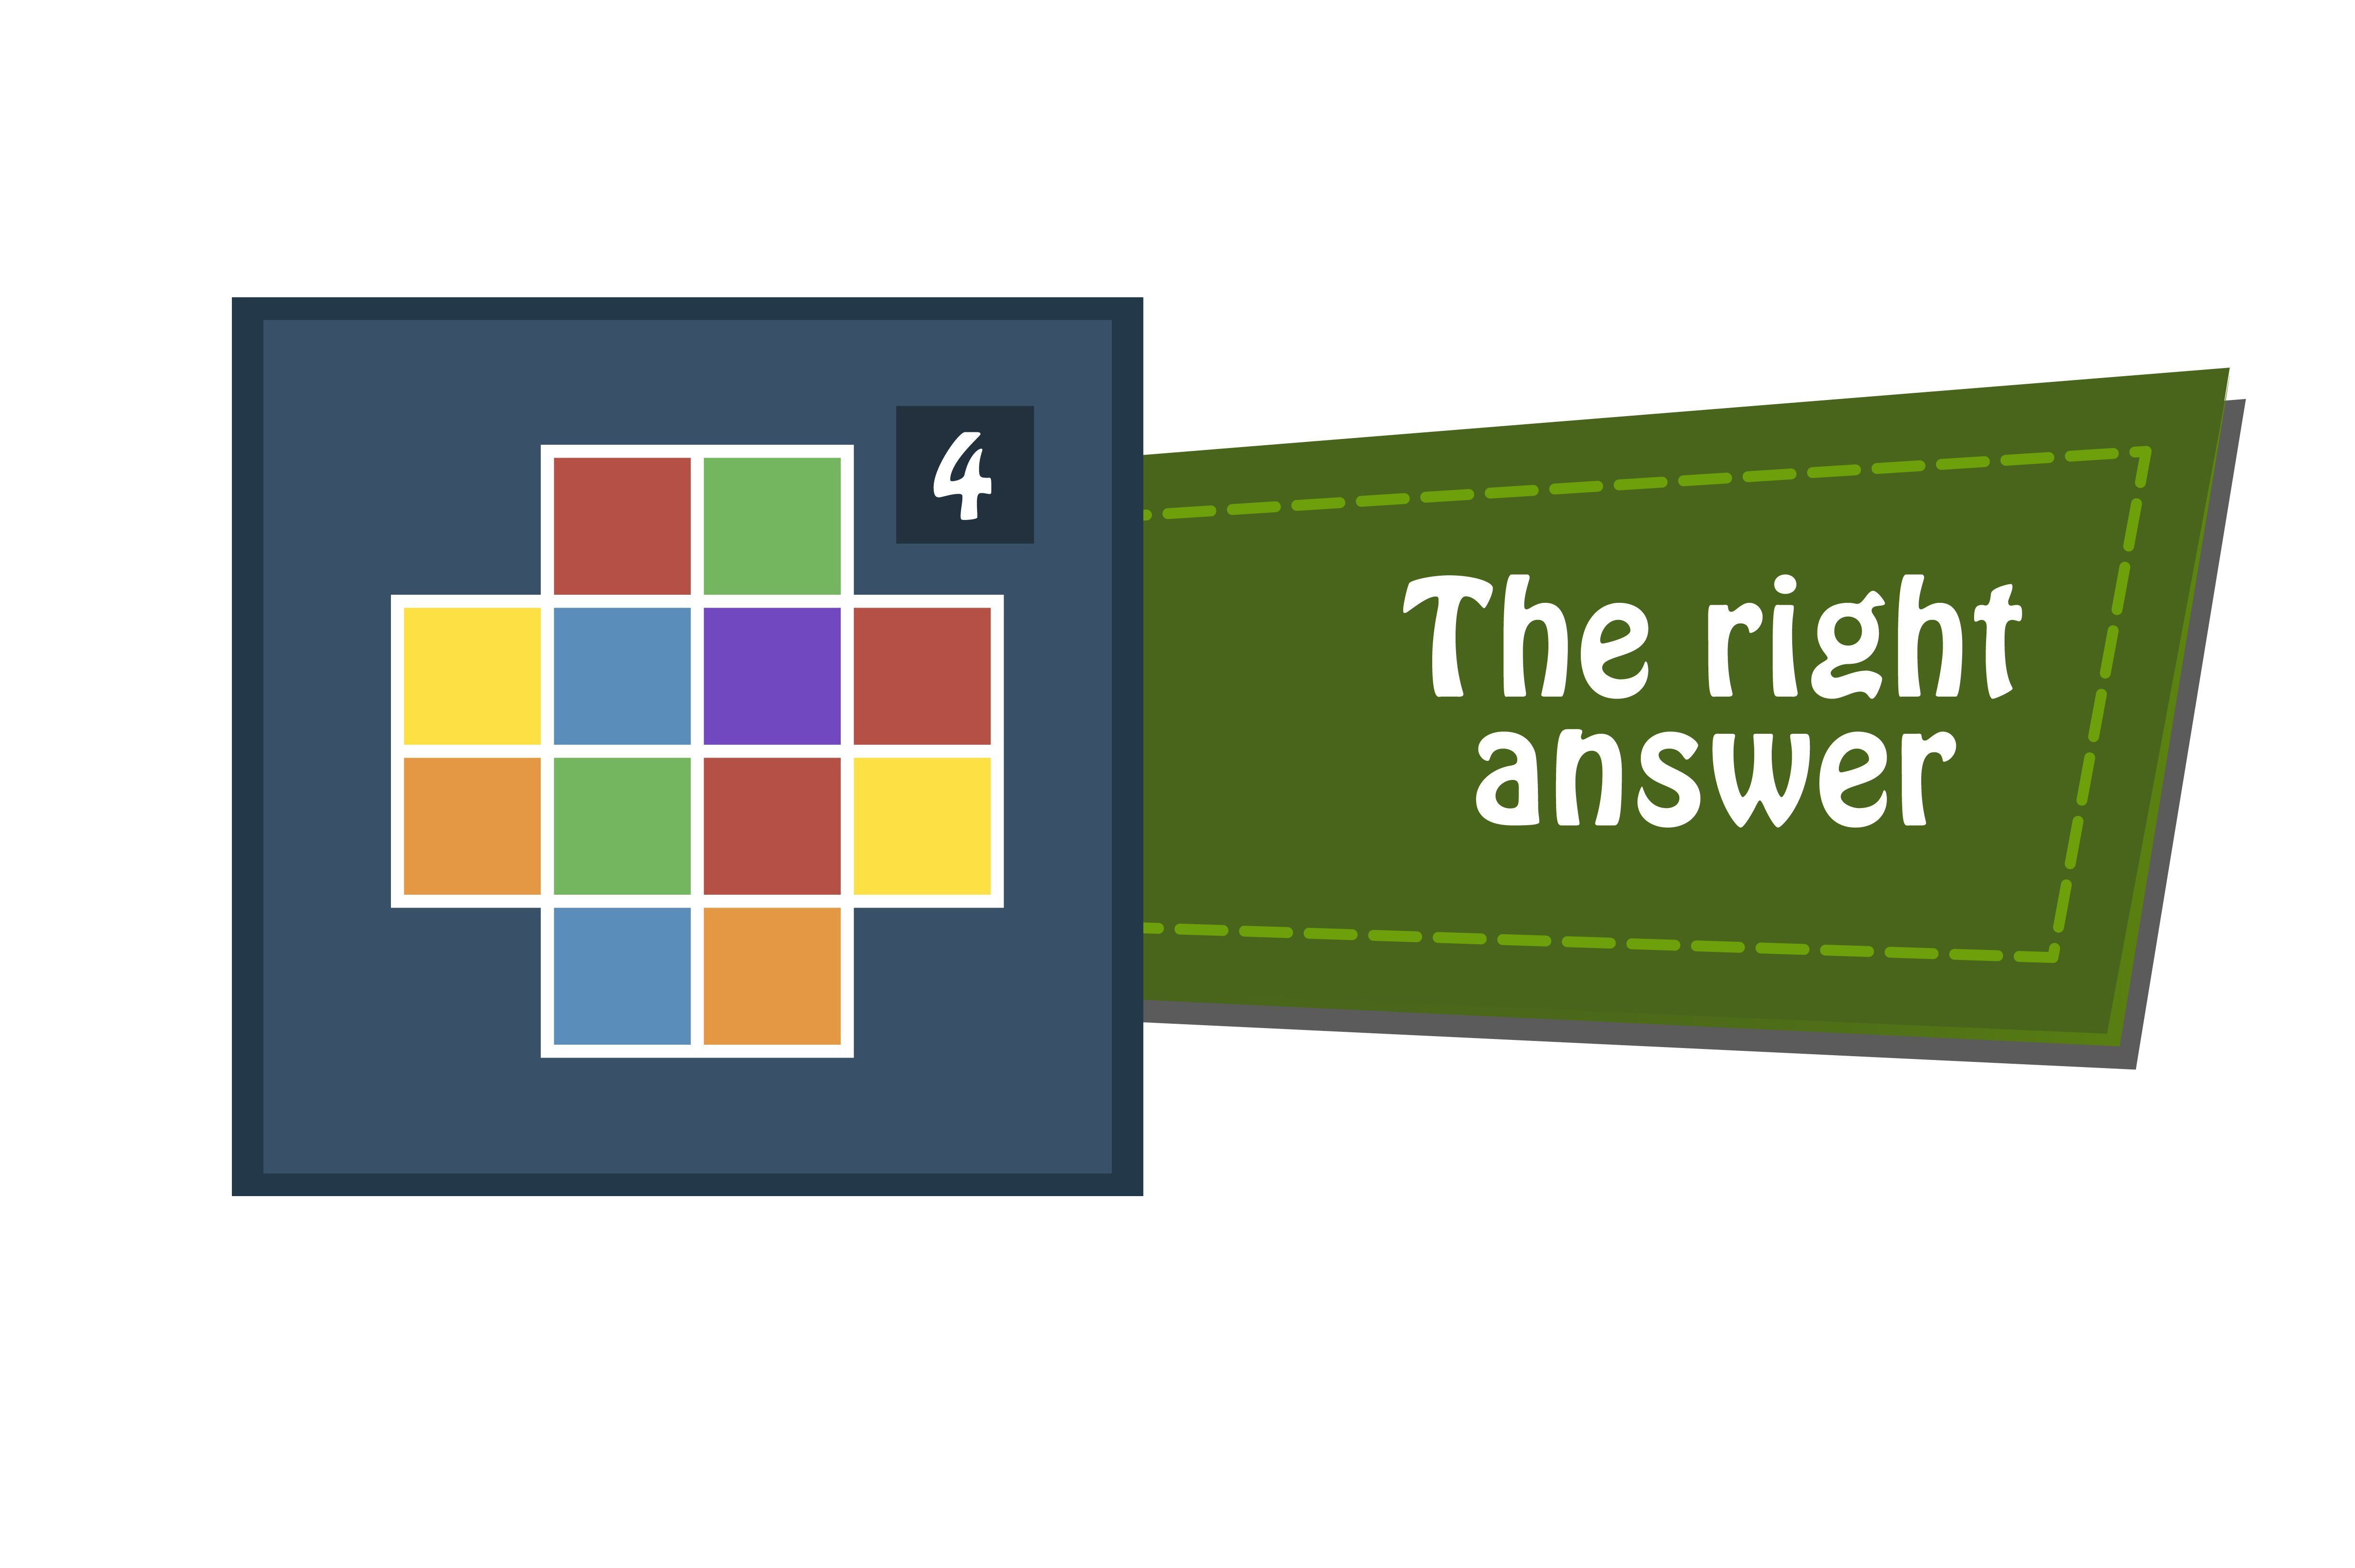 educational game iq for kids and adults development of logic, iq. Task game find 2 idenical shapes